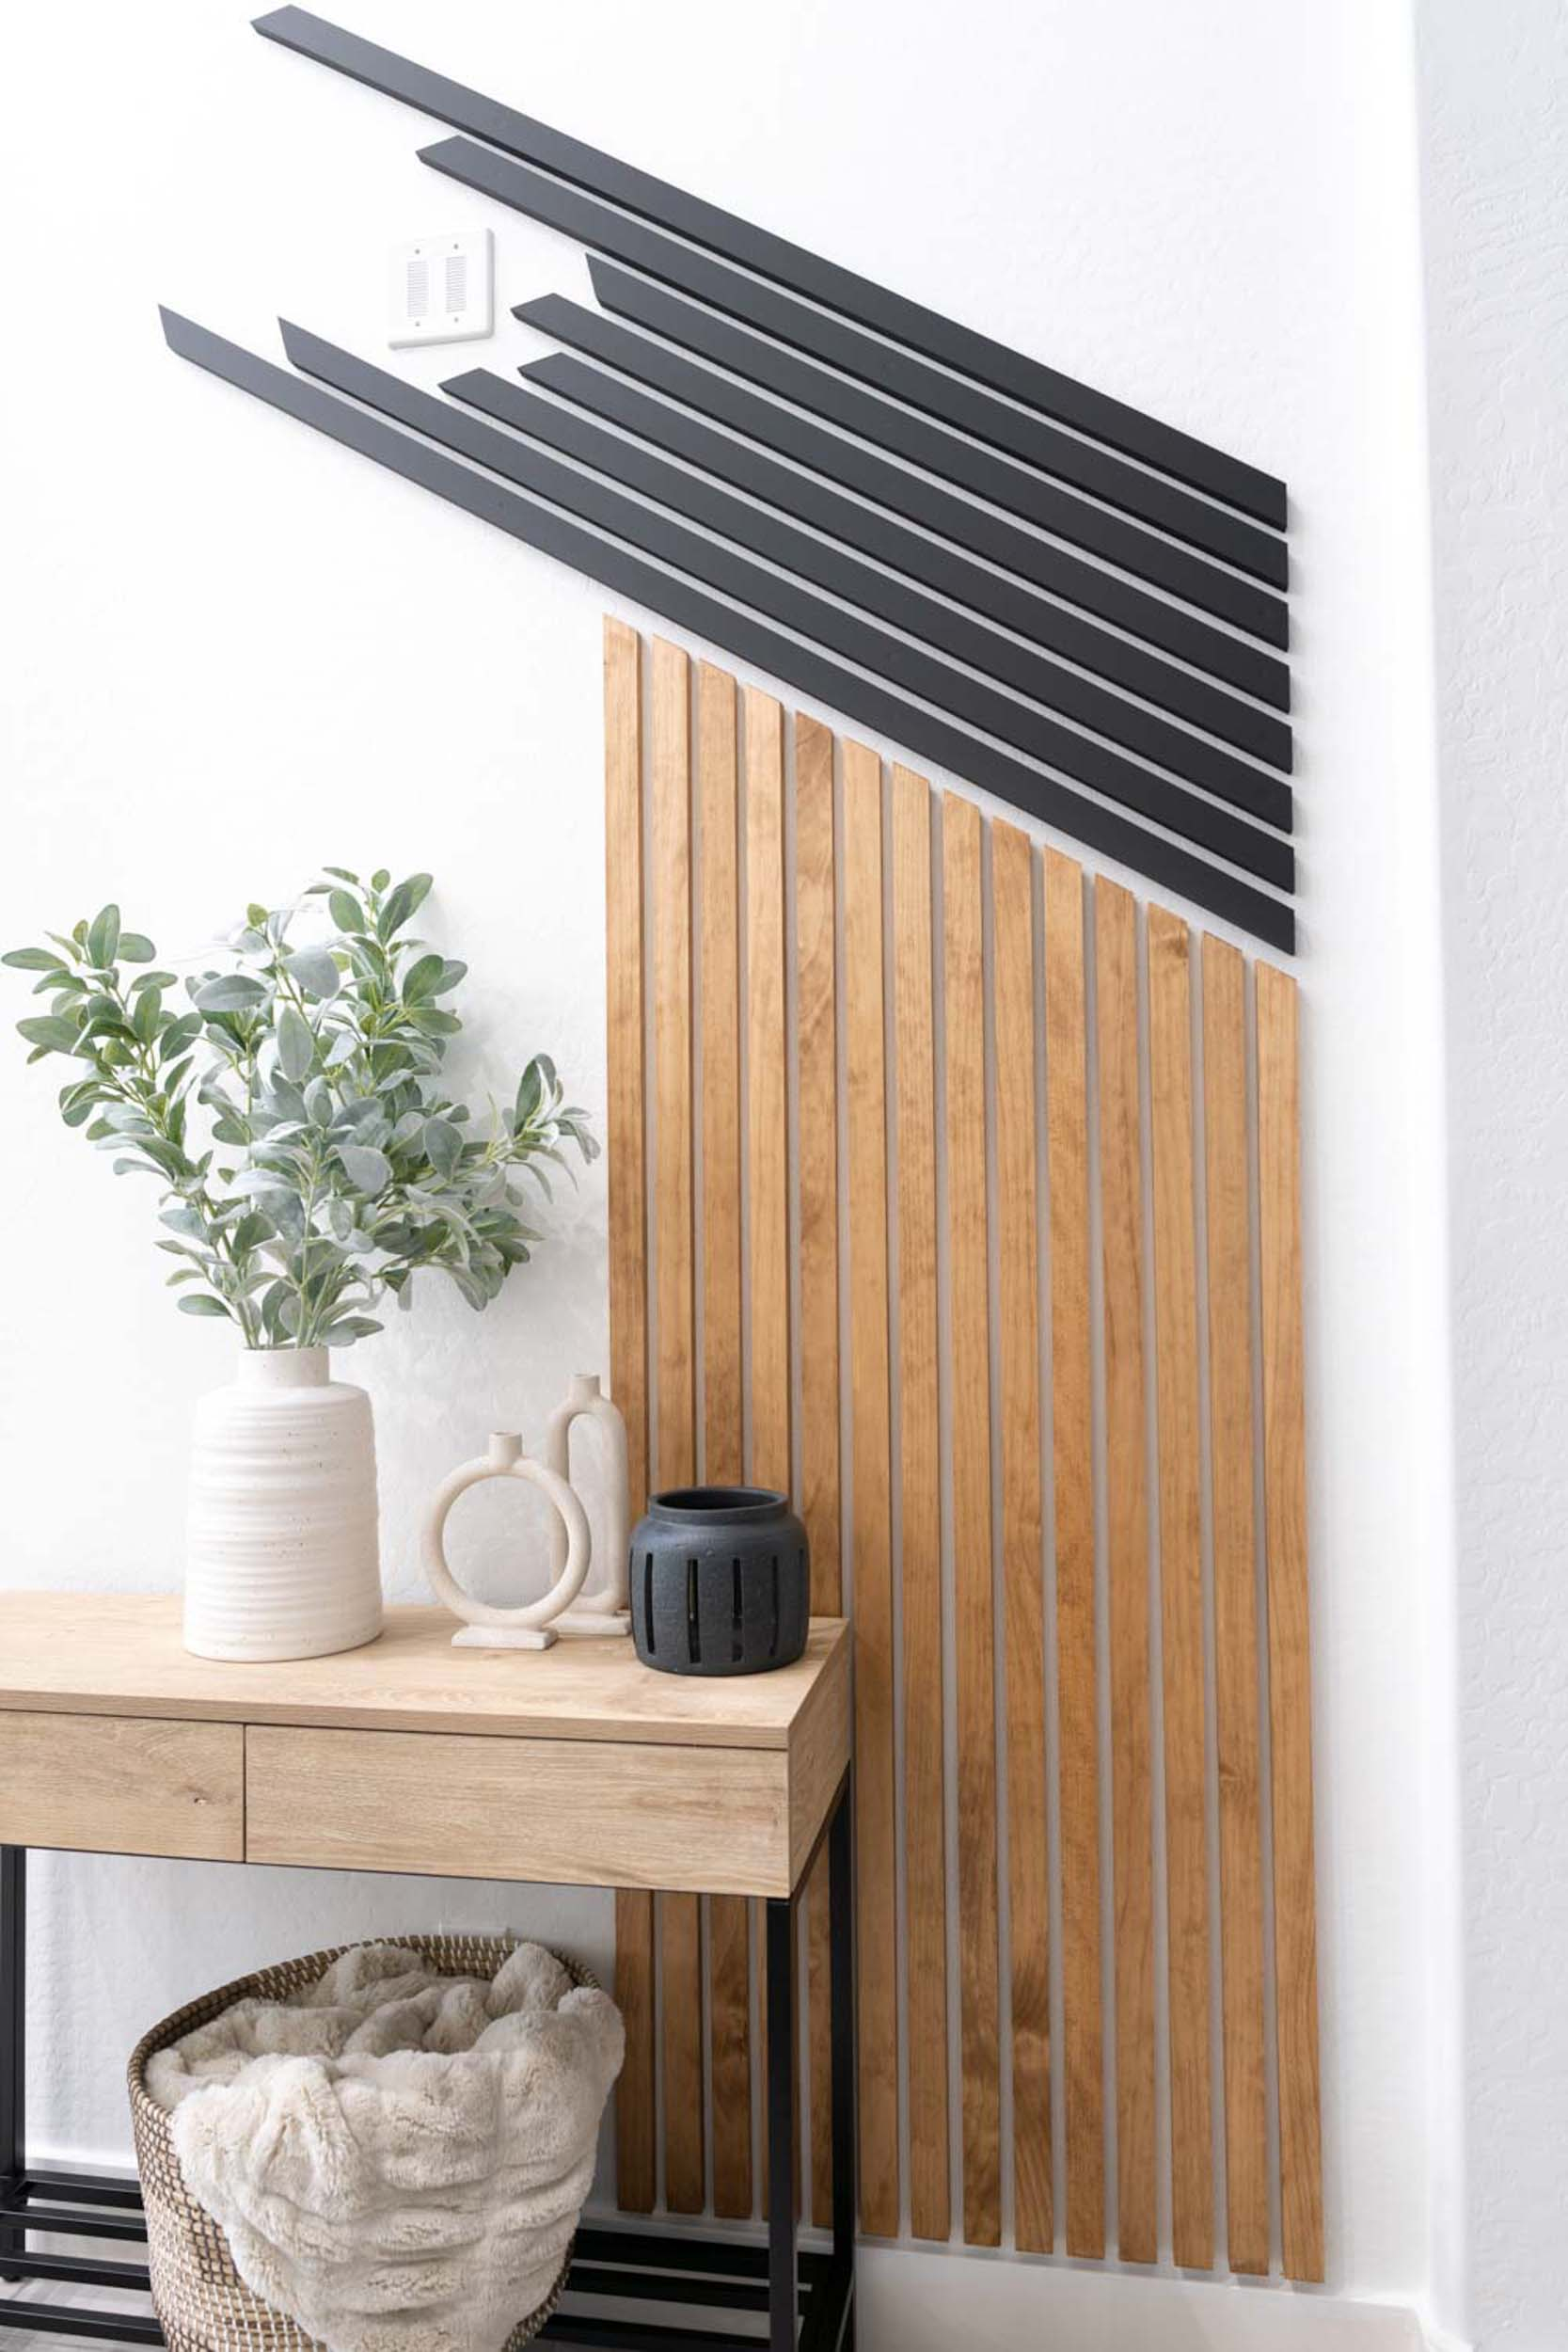 Vertical wood slats and diagonal wood slats.